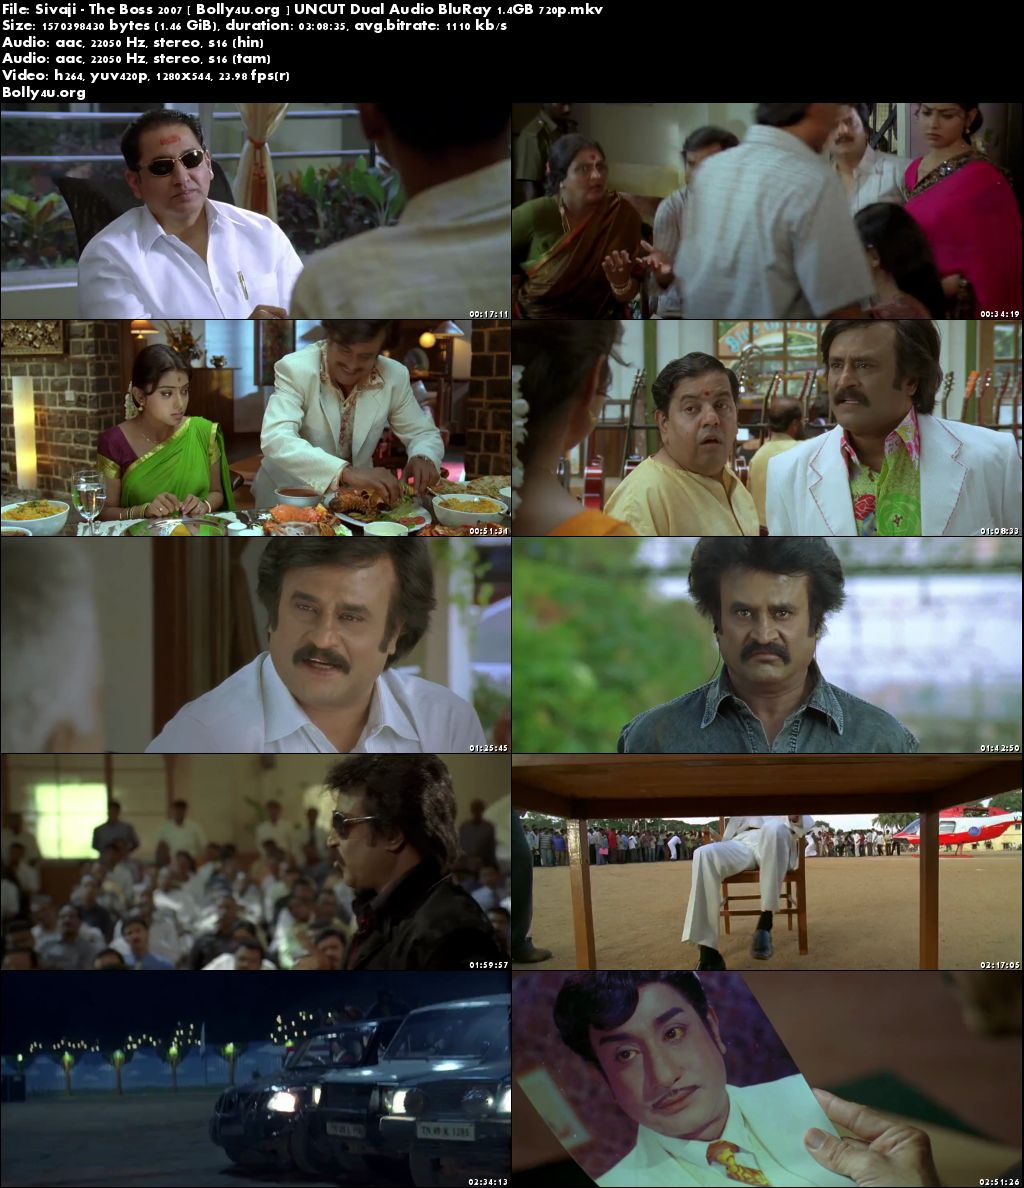 Sivaji The Boss 2007 Hindi UNCUT Dual Audio BluRay 720p Download